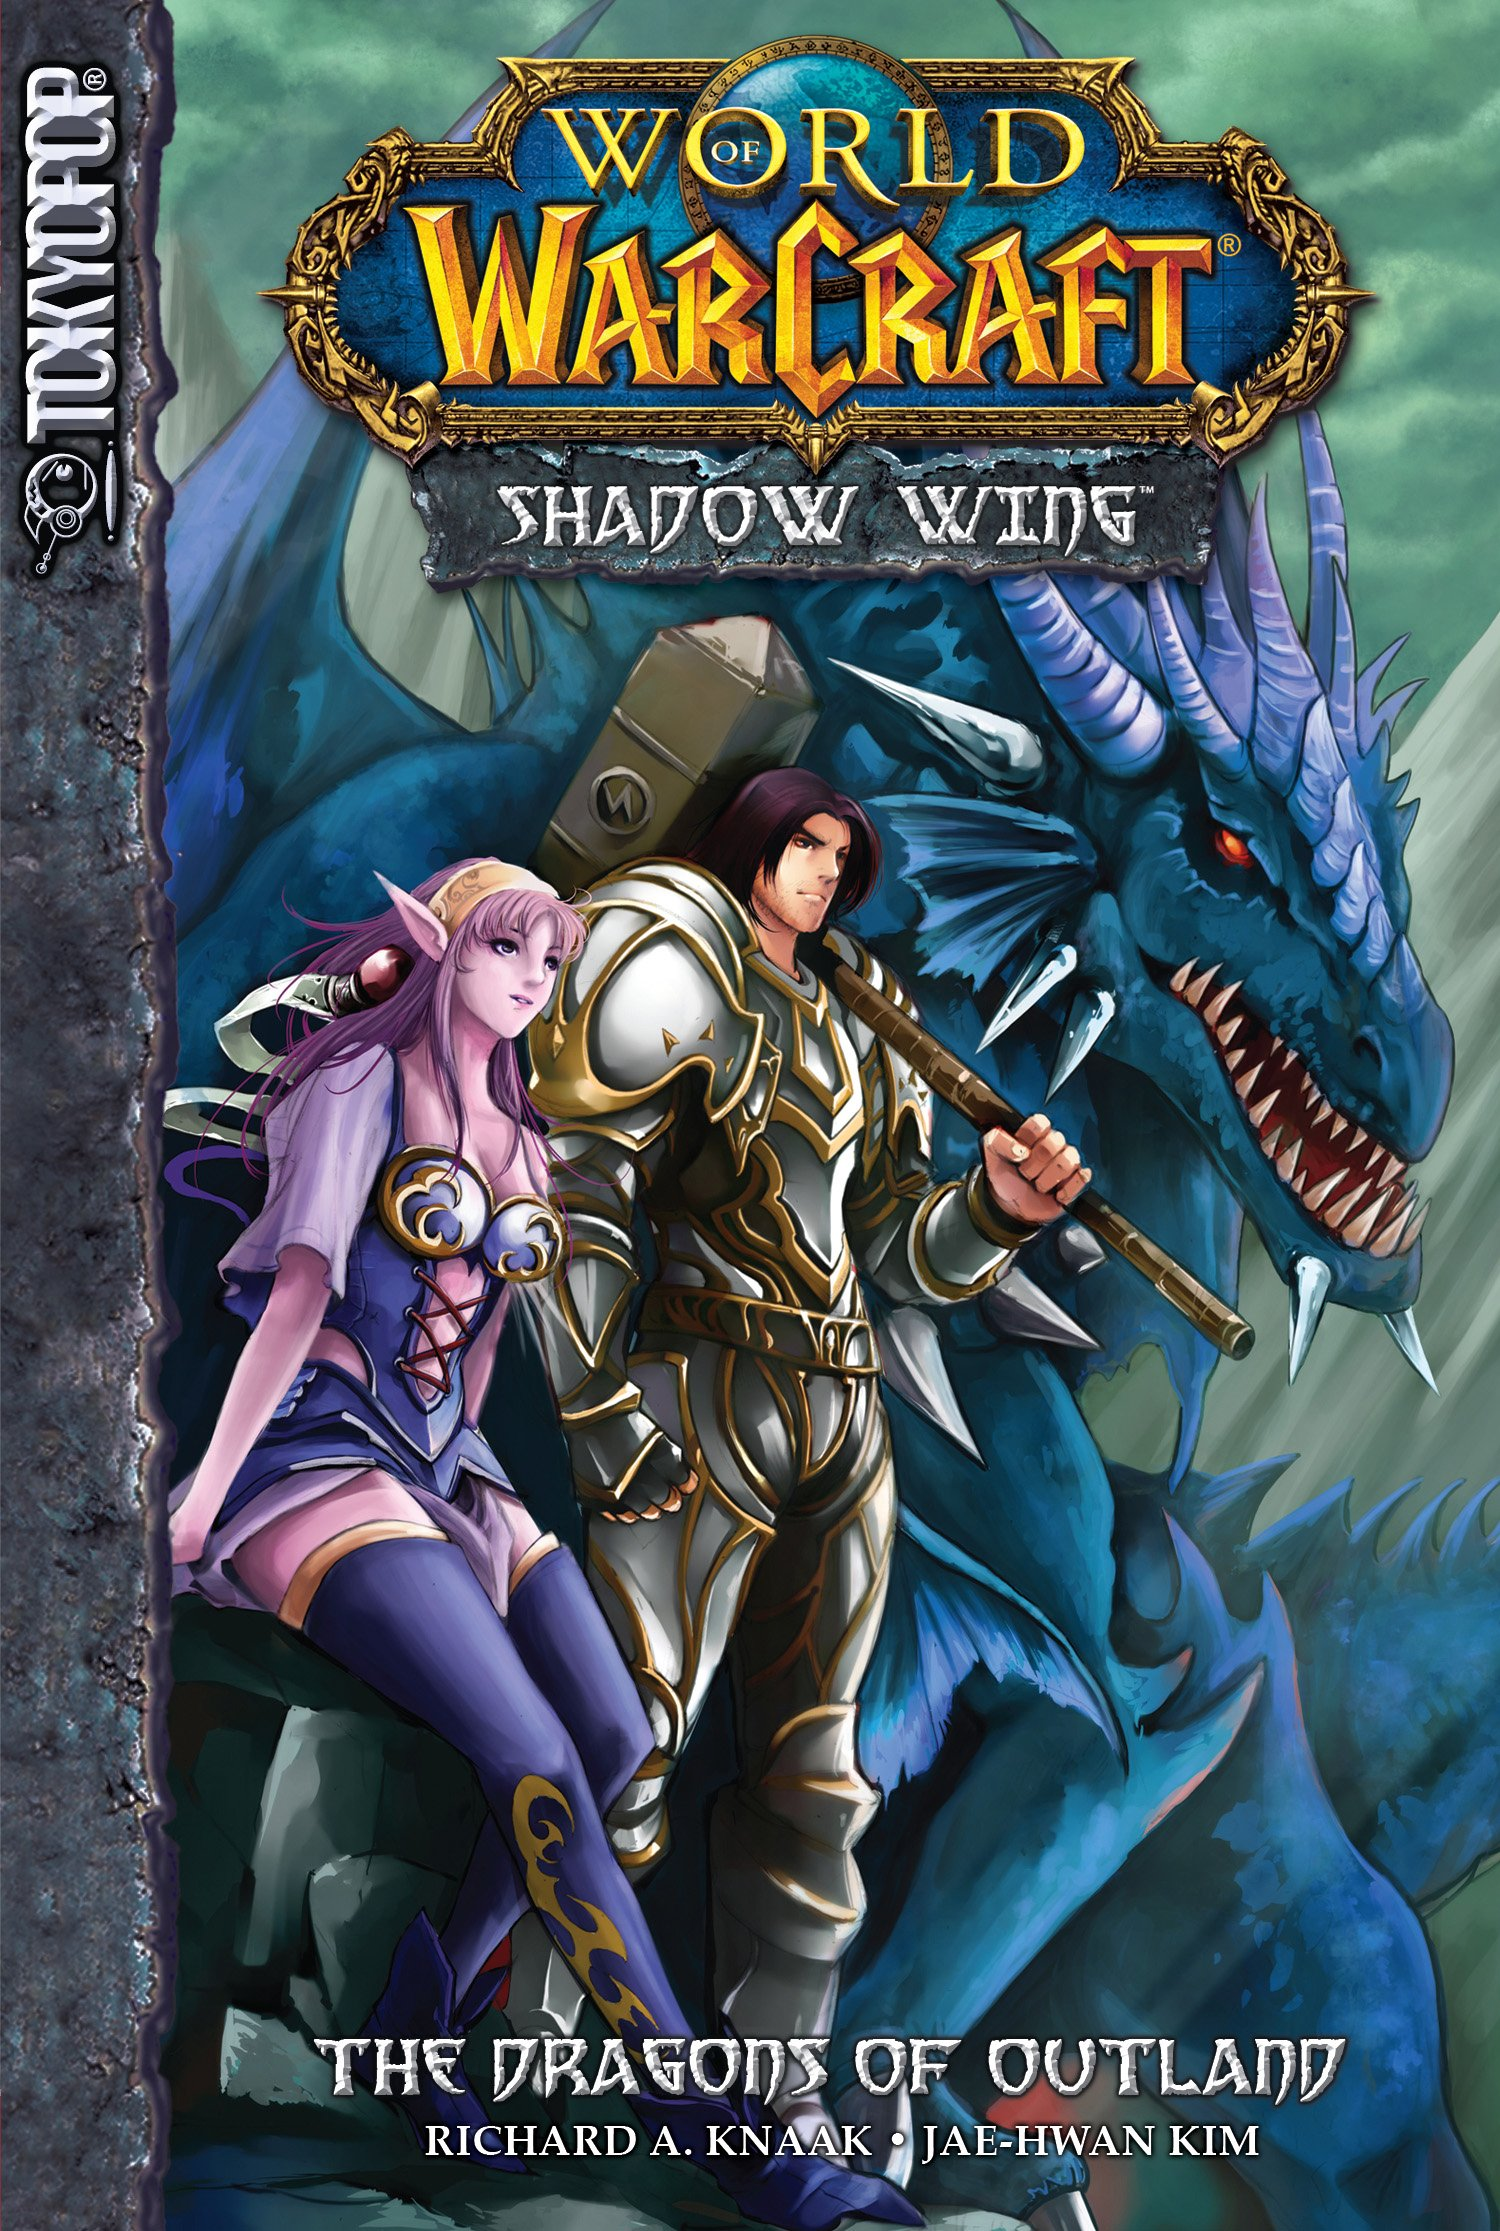 Warcraft: Dragons of Outland Vol. 1